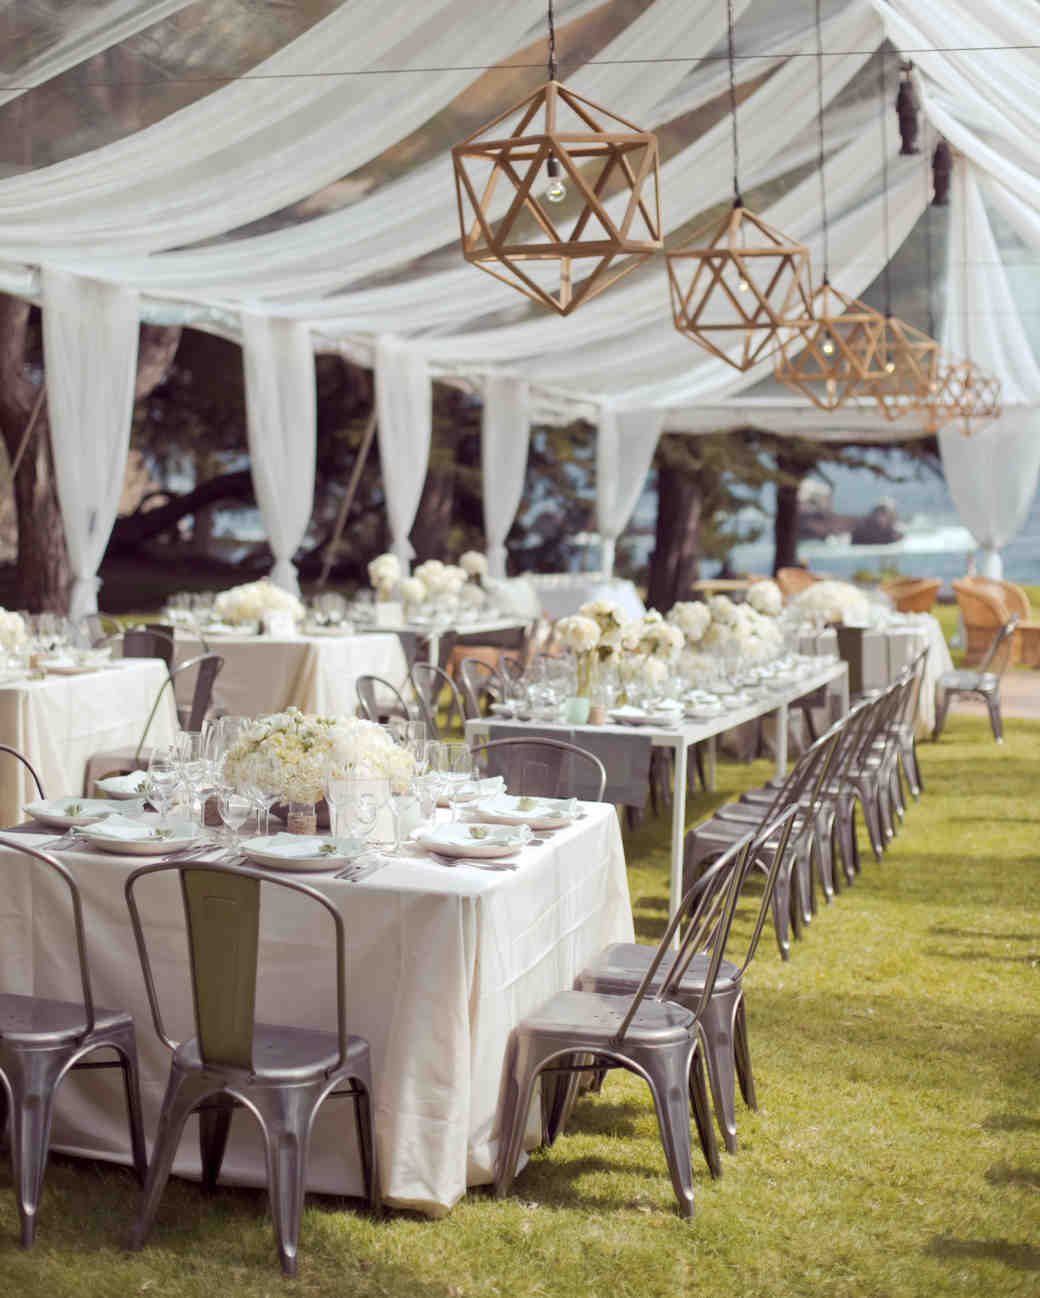 7 Barn Wedding Decoration Ideas For A Spring Wedding: 33 Tent Decorating Ideas To Upgrade Your Wedding Reception